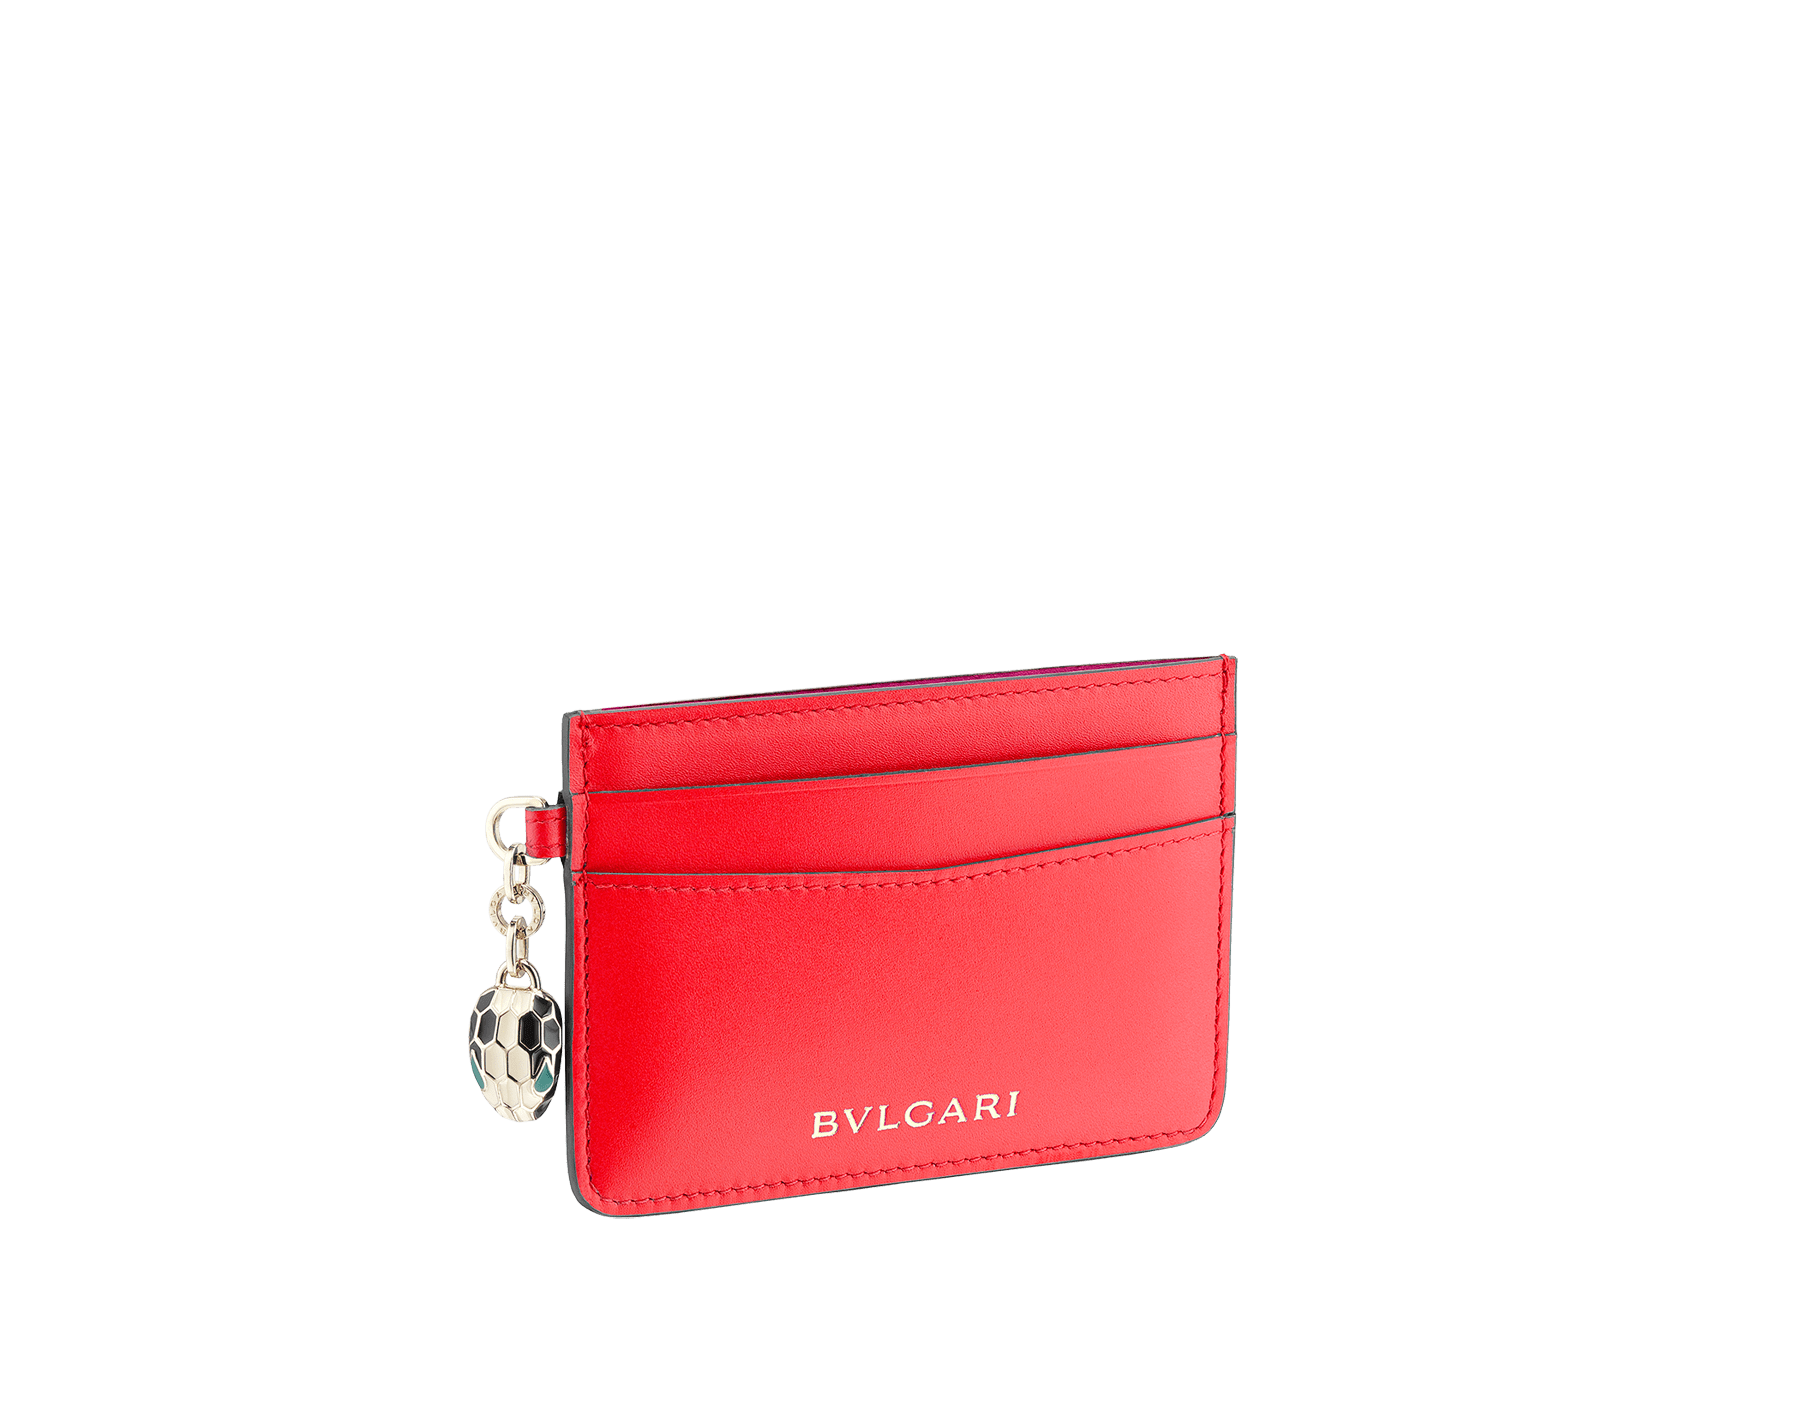 Serpenti Forever credit card holder in sea star coral and pink spinel calf leather. Iconic snakehead charm in black and white enamel, with green malachite enamel eyes. 288019 image 1